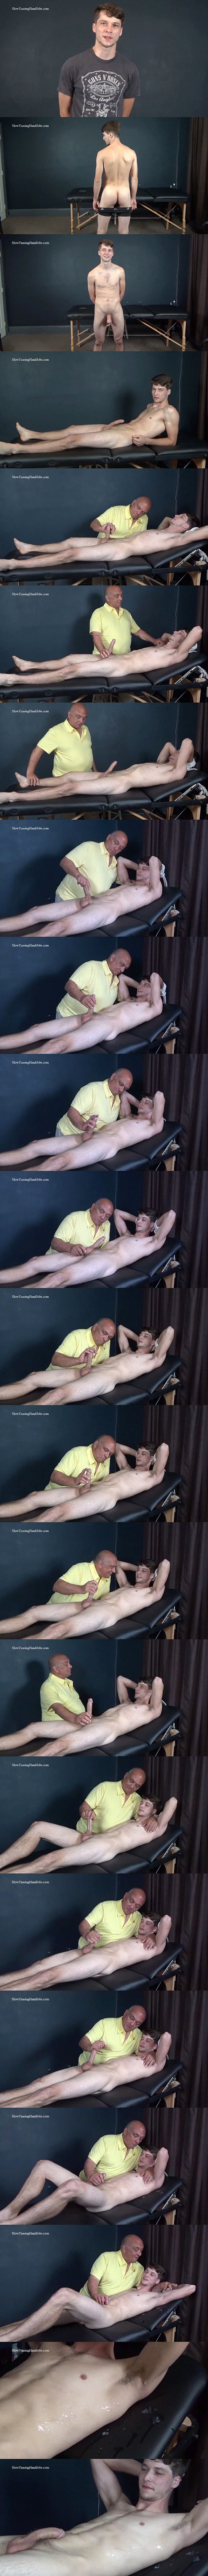 Slowteasinghandjobs - Rich slowly teases bi-sexual dude Nathan's cock and mushroom head before he jerks a big load out of Nathan's hard pole in Light Fingered Edging 02